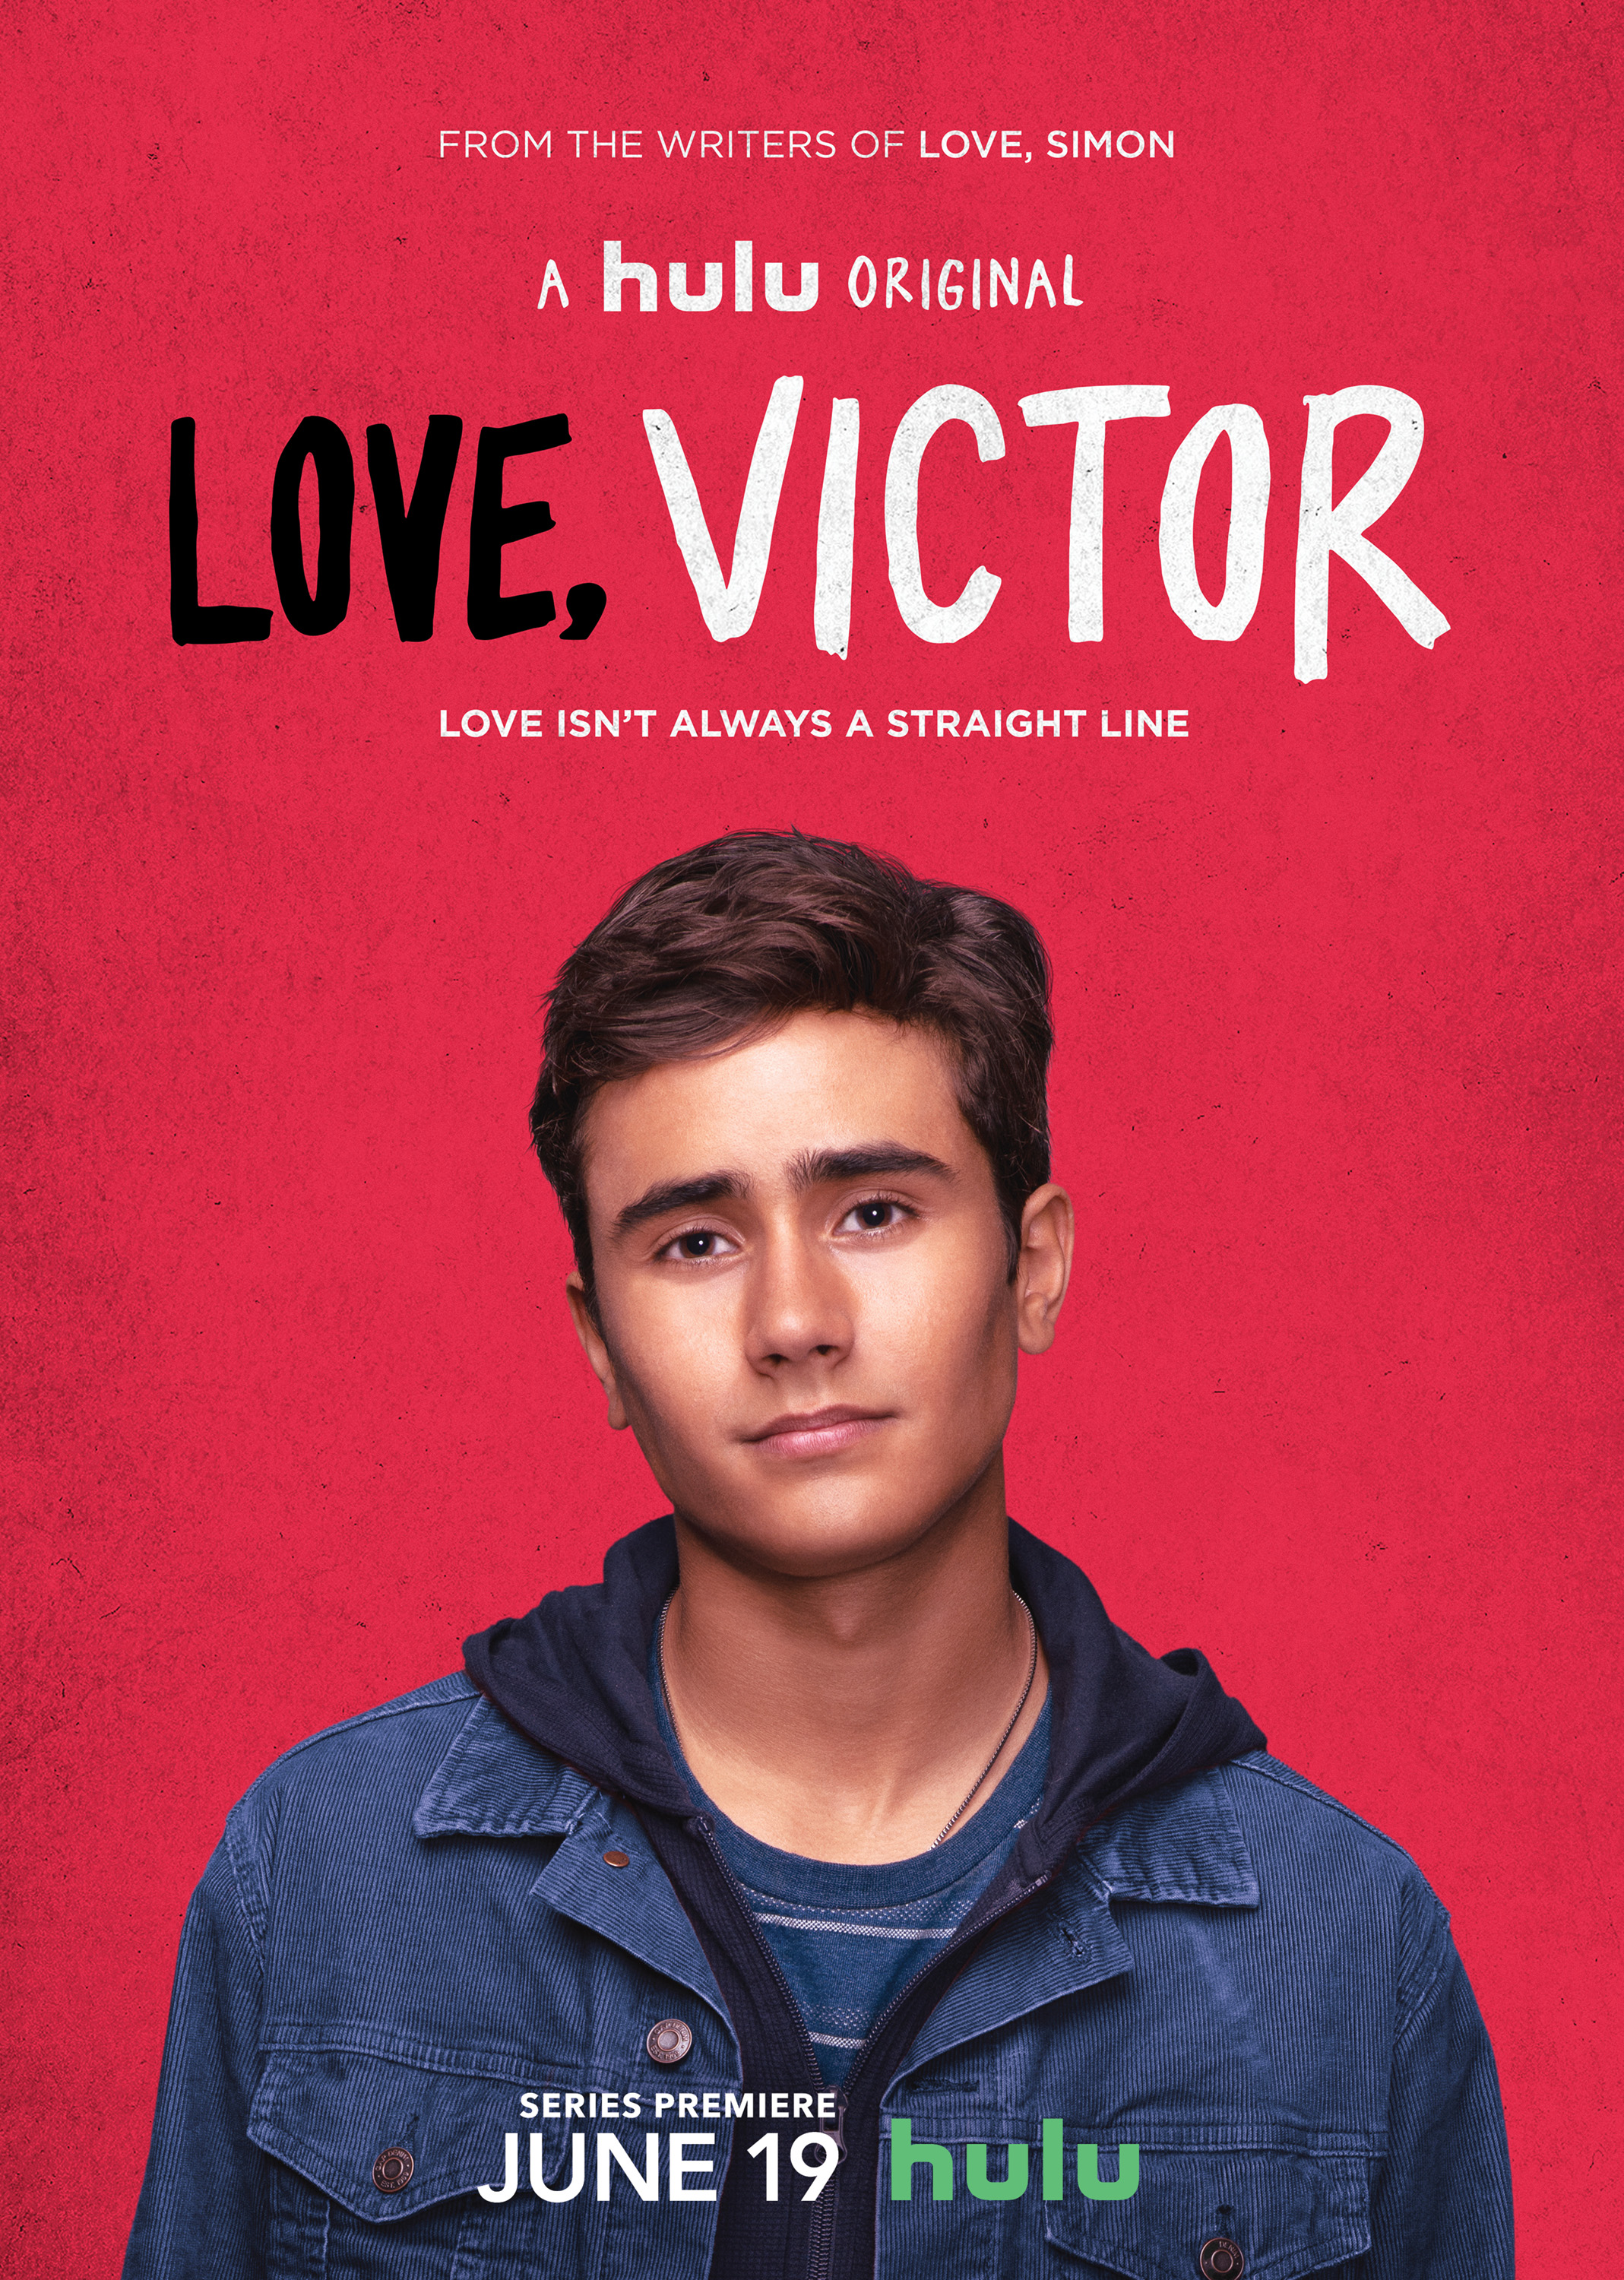 Love, Victor (TV Series 2020– ) - IMDb